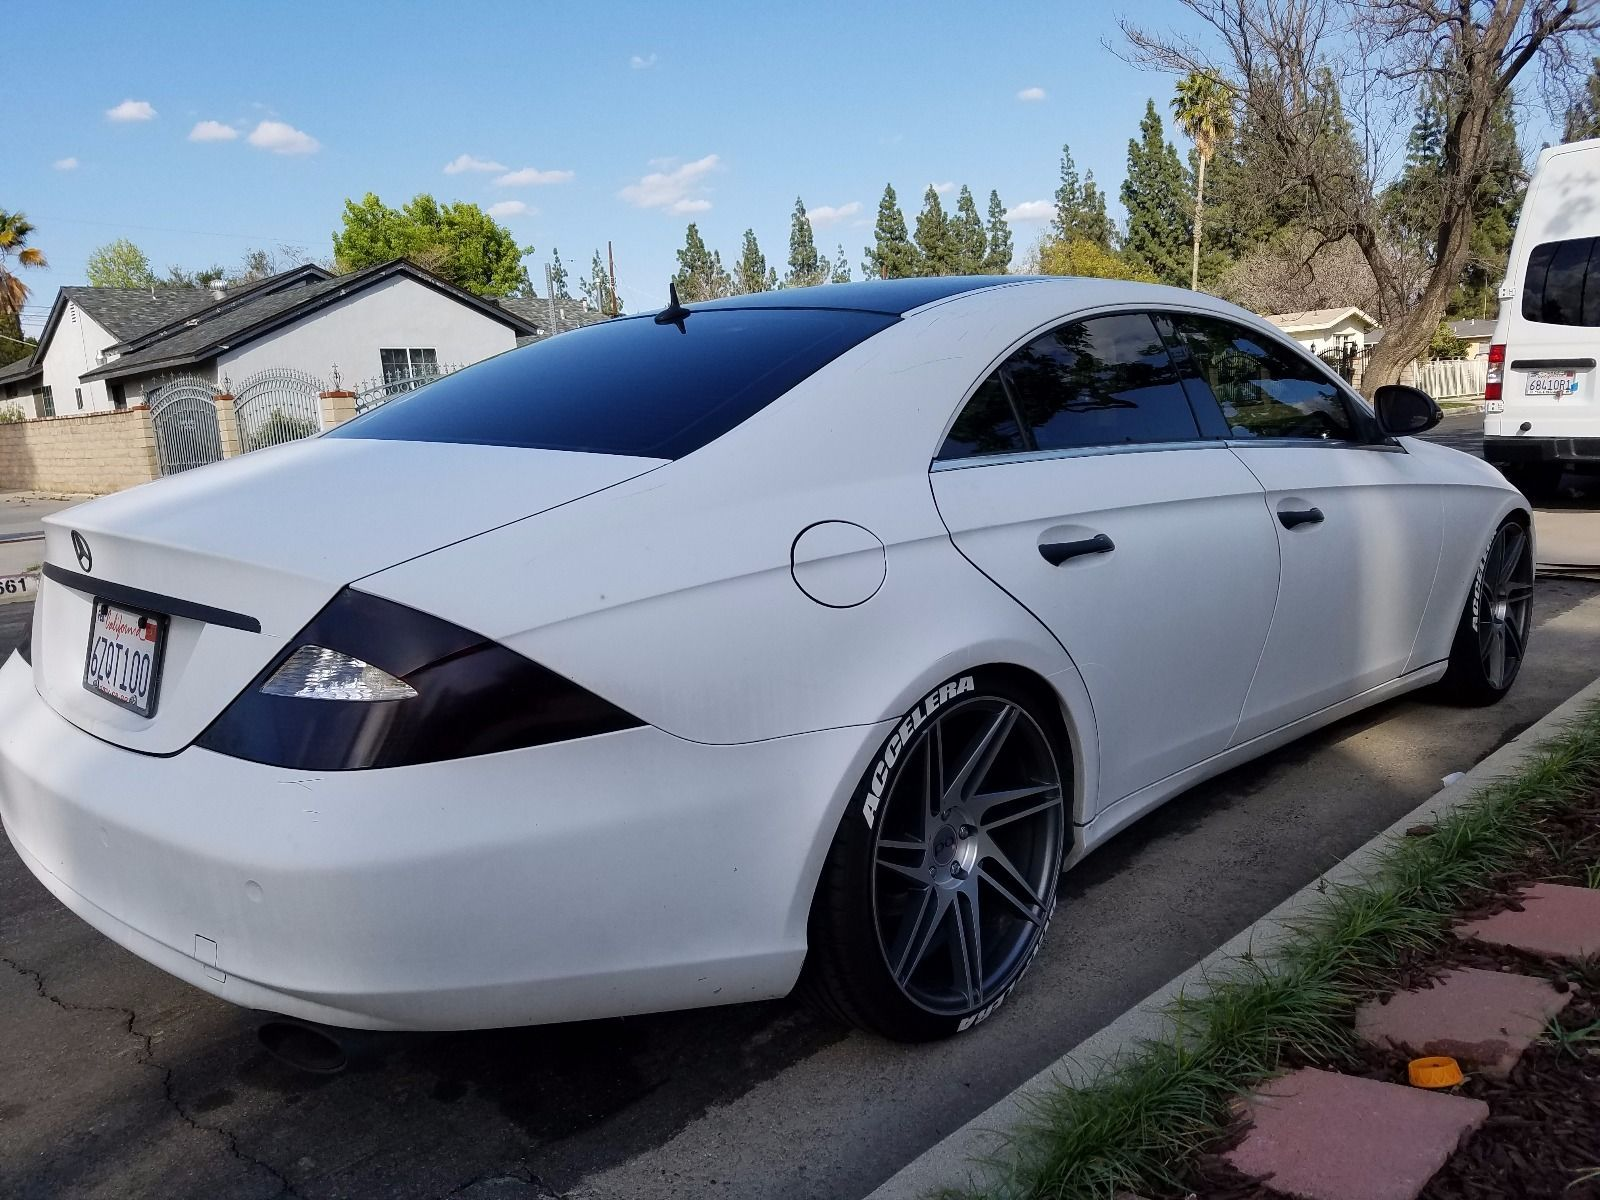 2006 Mercedes Benz Cls 500 >> 2006 Mercedes-Benz W219 CLS 500 on R20 Wheels | BENZTUNING